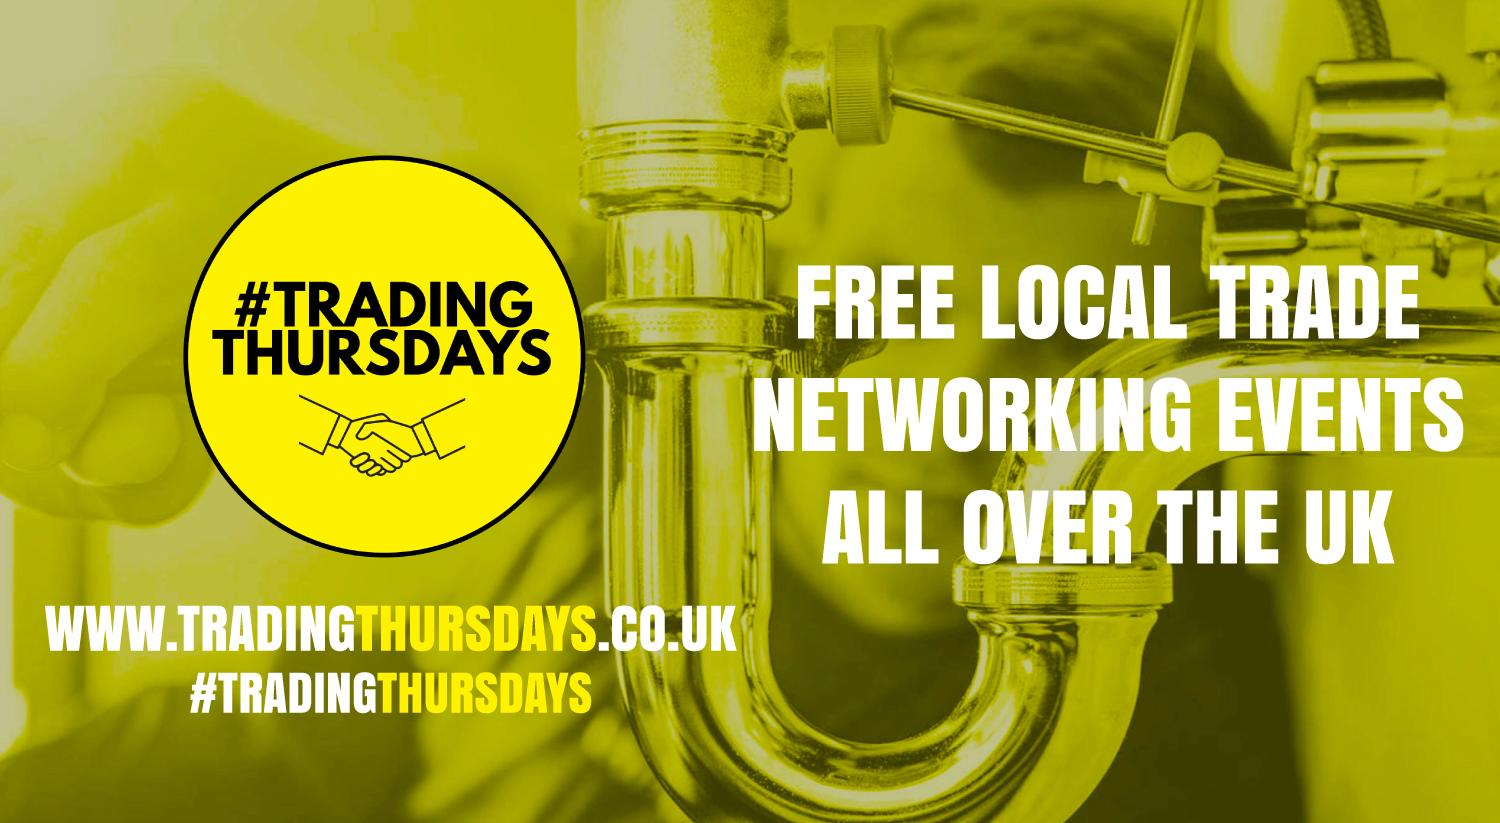 Trading Thursdays! Free networking event for traders in Wednesfield